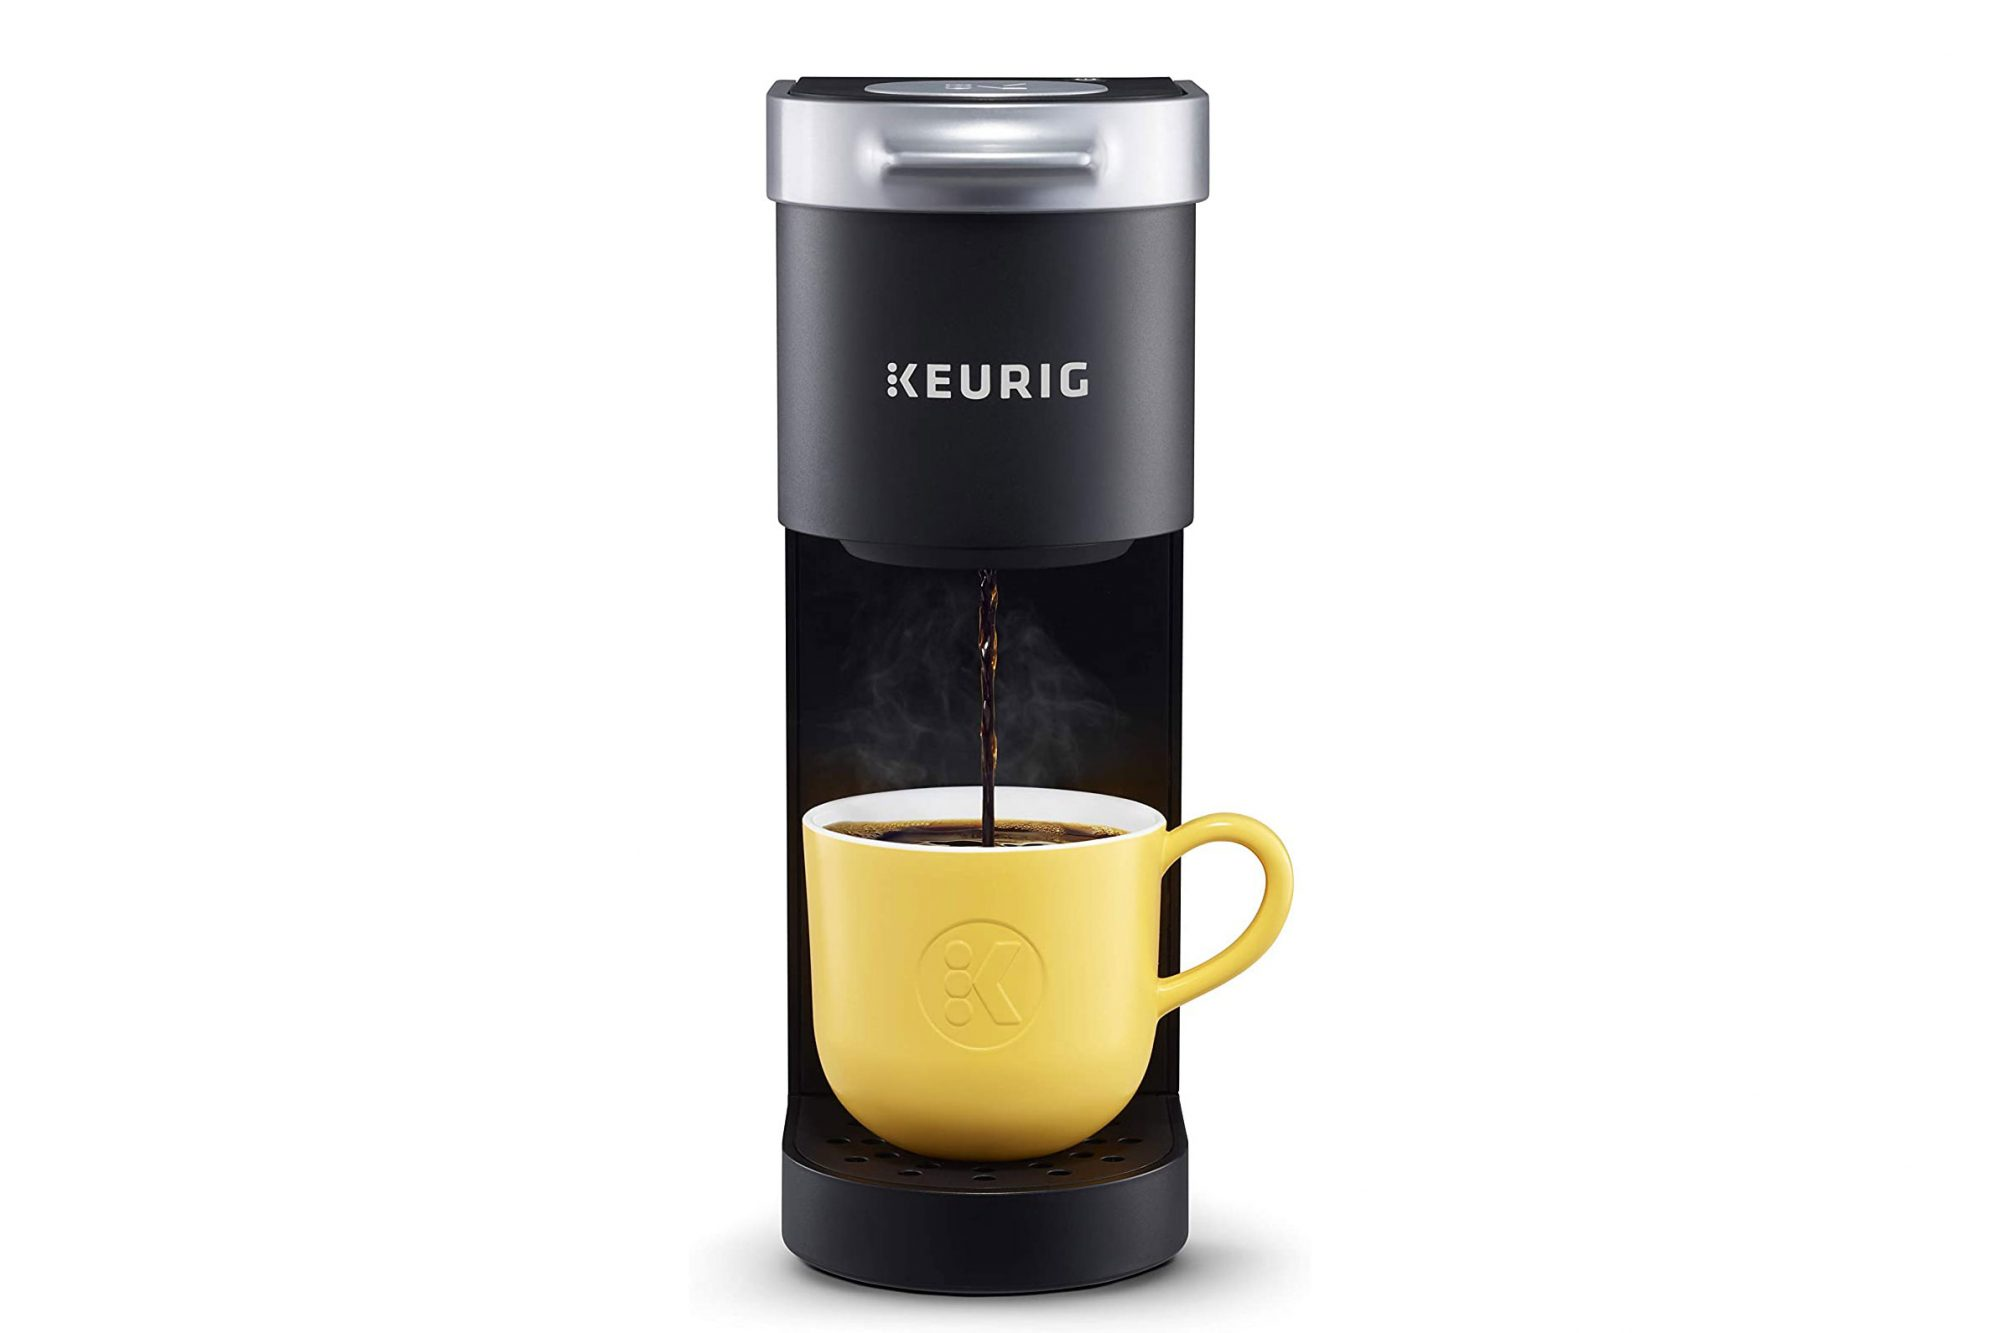 Keurig K-Mini pouring into yellow mug